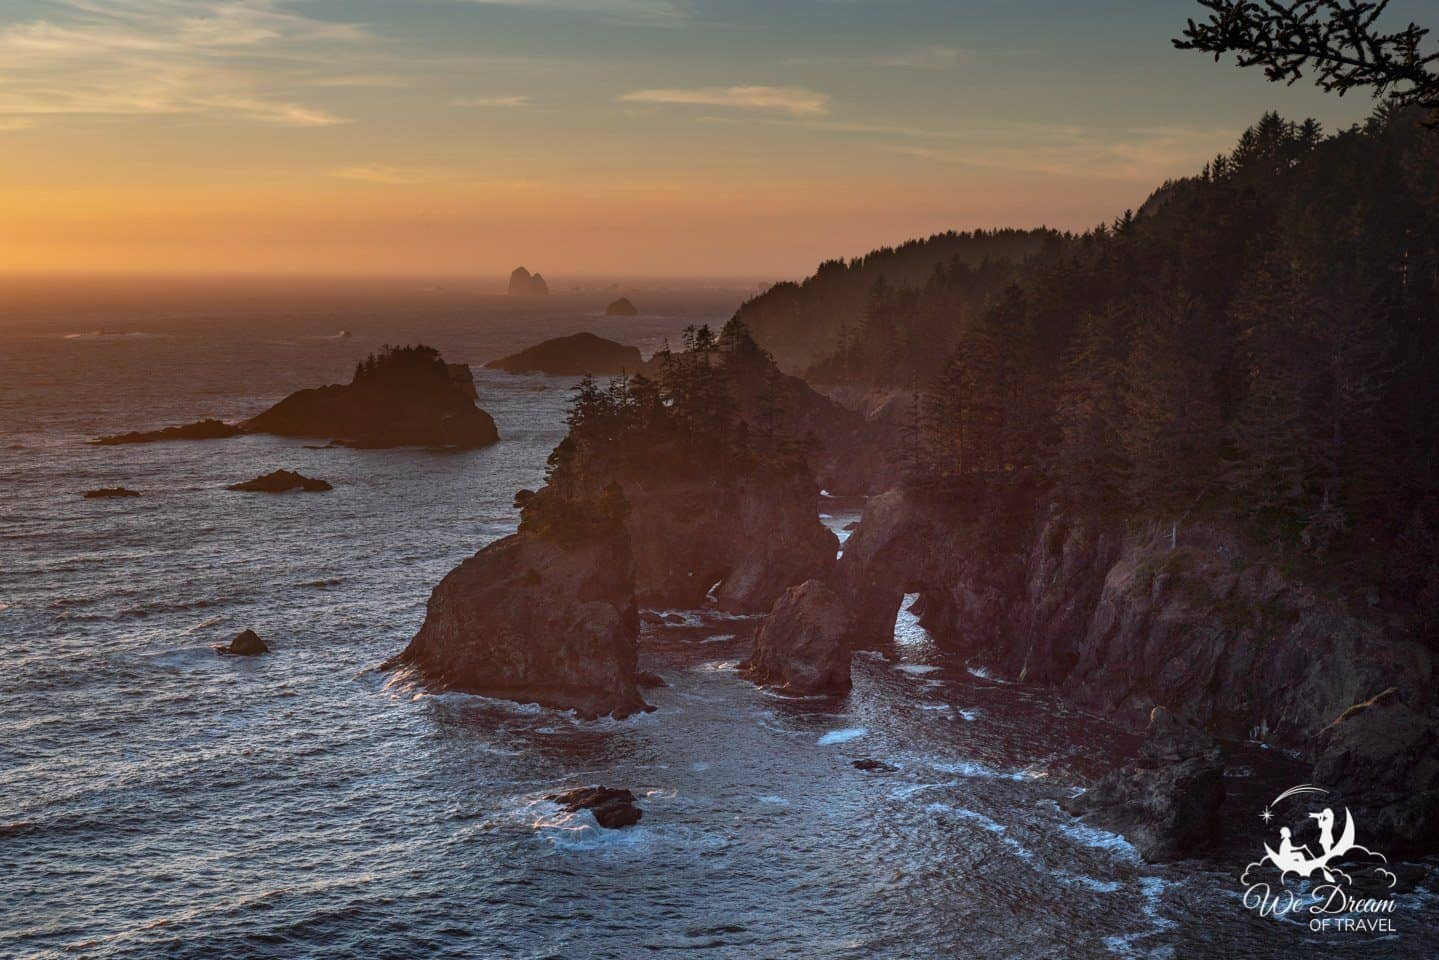 Moody sunset photography at Samuel H Boardman on the Southern Oregon coast.